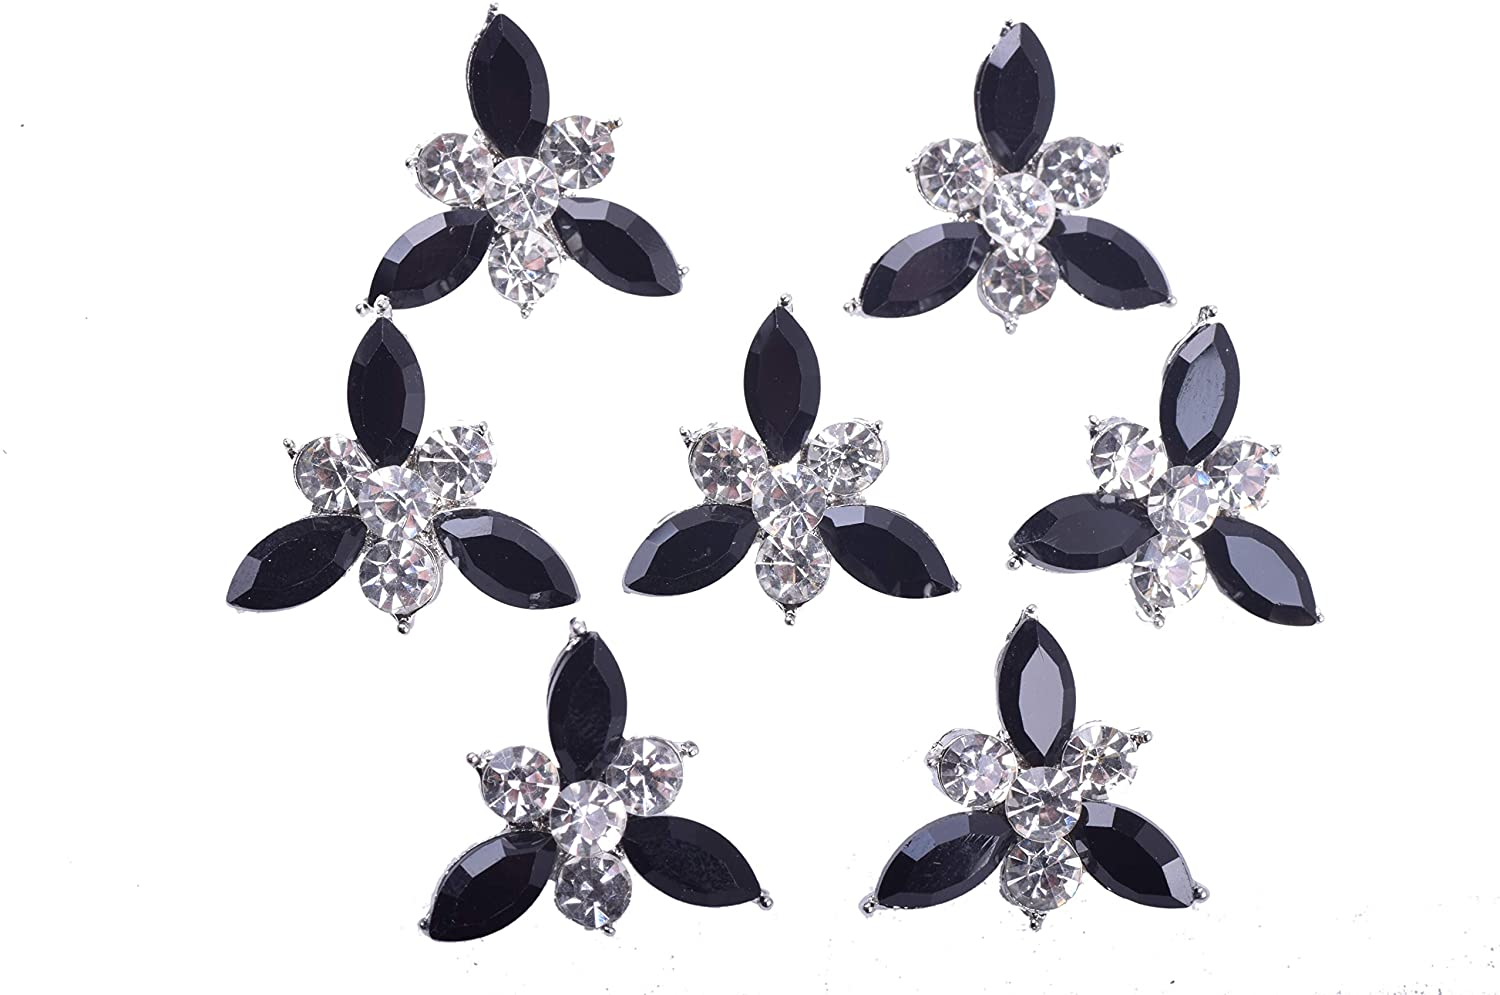 KAOYOO 10Pcs Crystal Rhinestone Buttons for DIY,Sewing Craft,Decoration(Clear and Black)